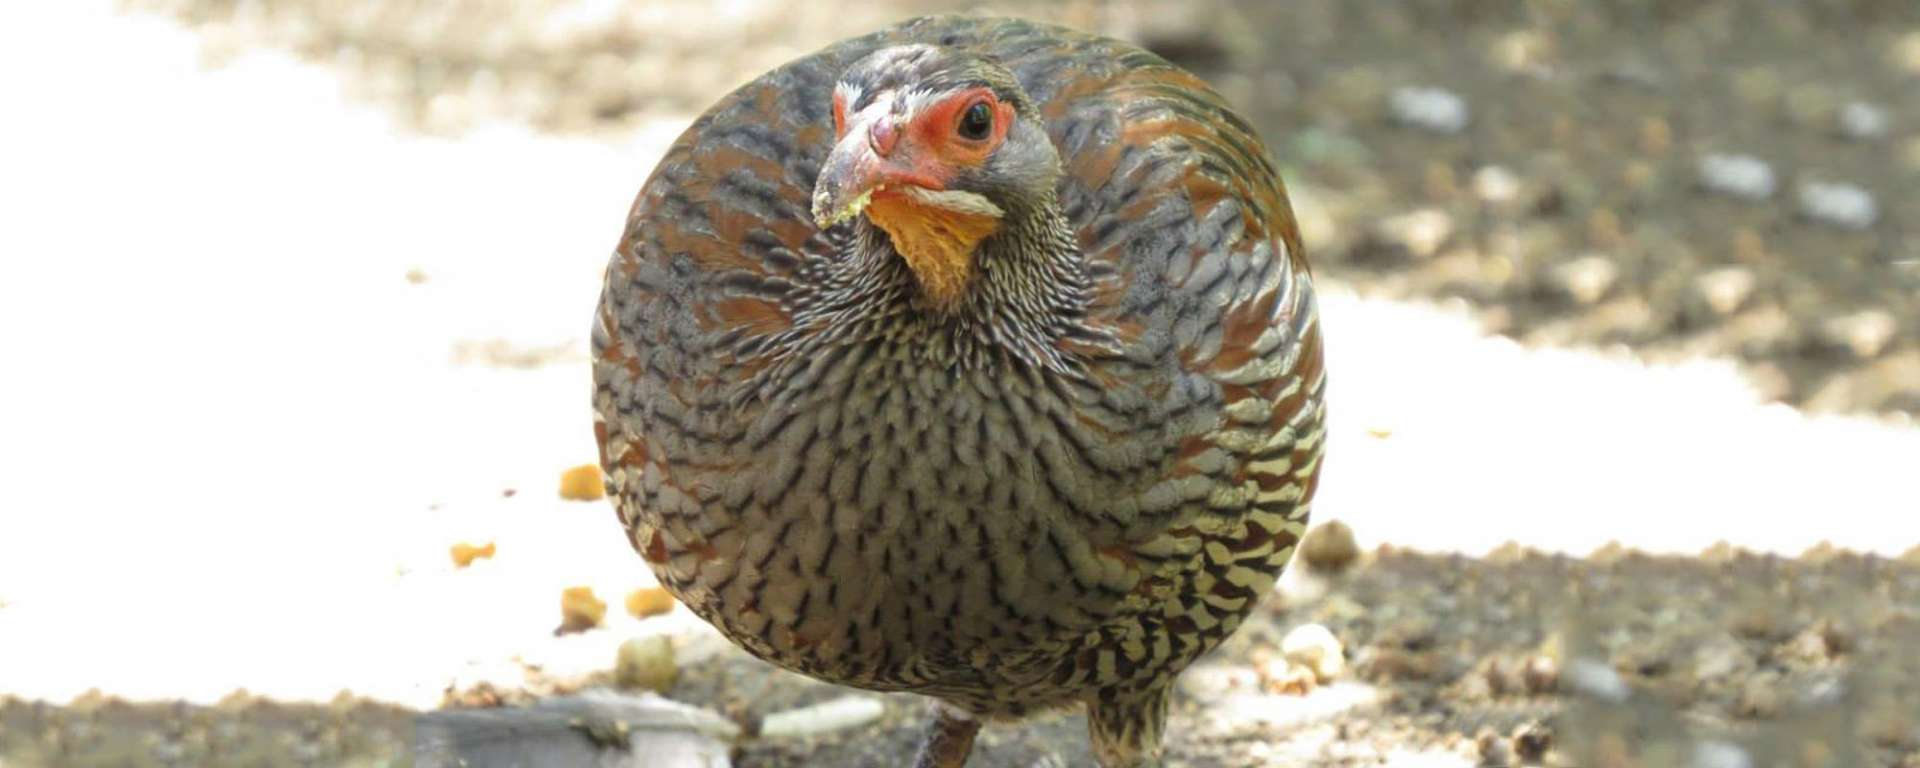 Yellow-throated Francolin